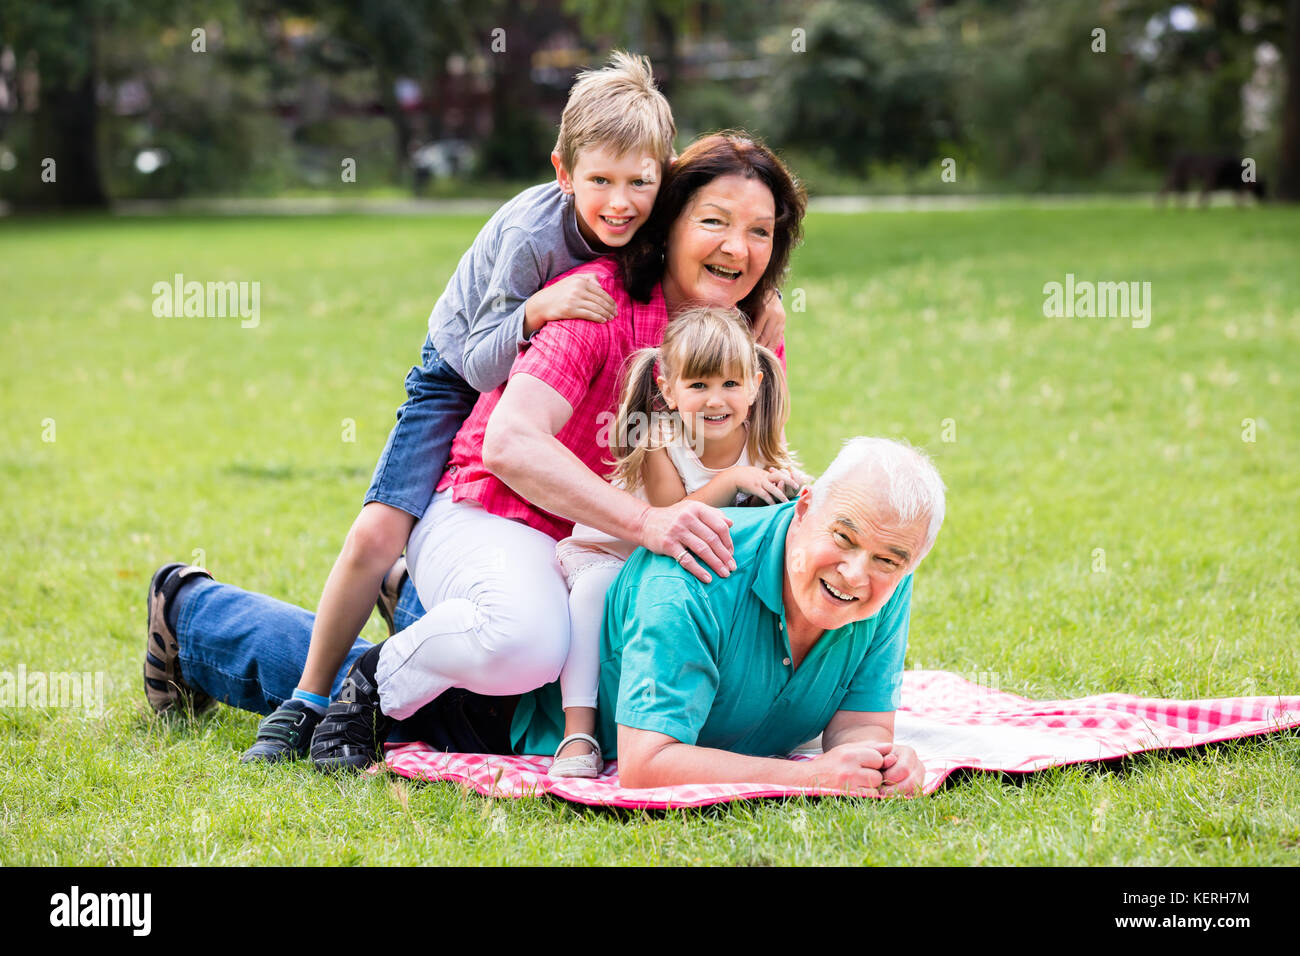 Happy Family Having Fun Lying On Grass In Park - Stock Image